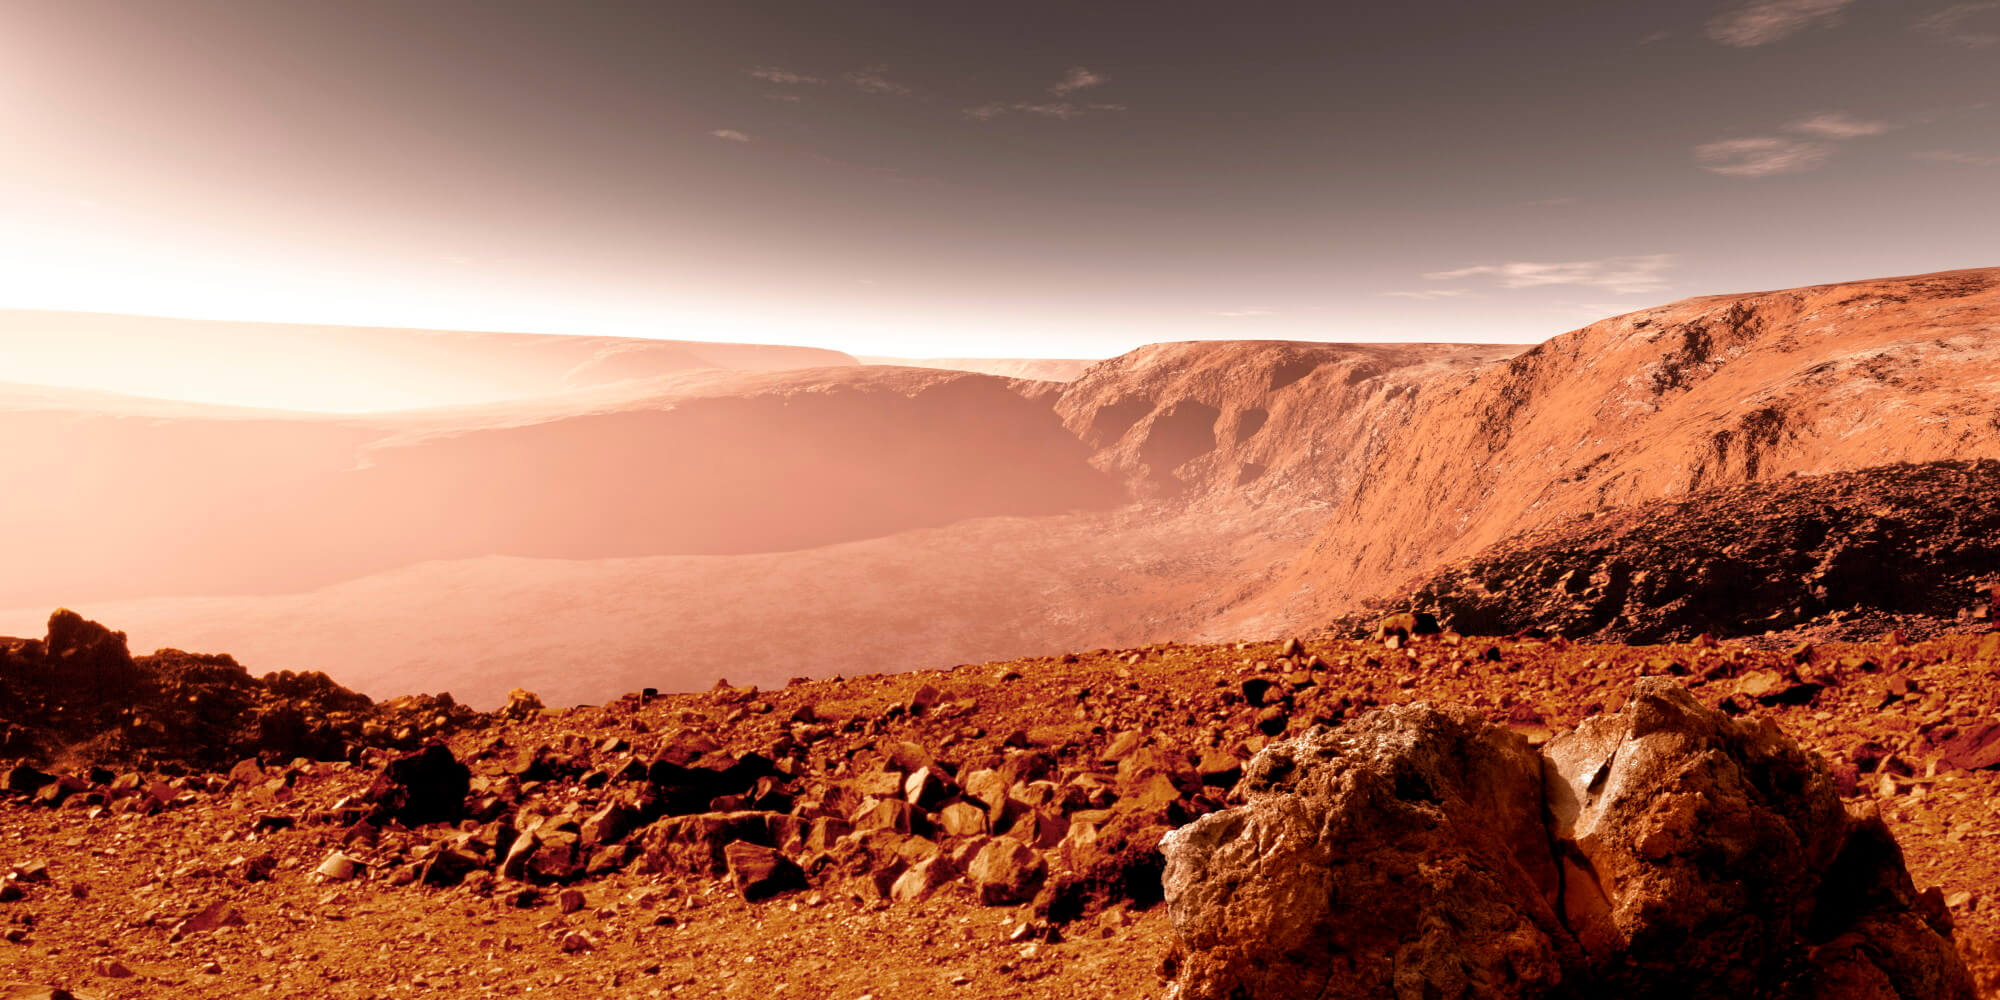 Mars in 2016,NASA, NASA will let you explore Mars in 2016